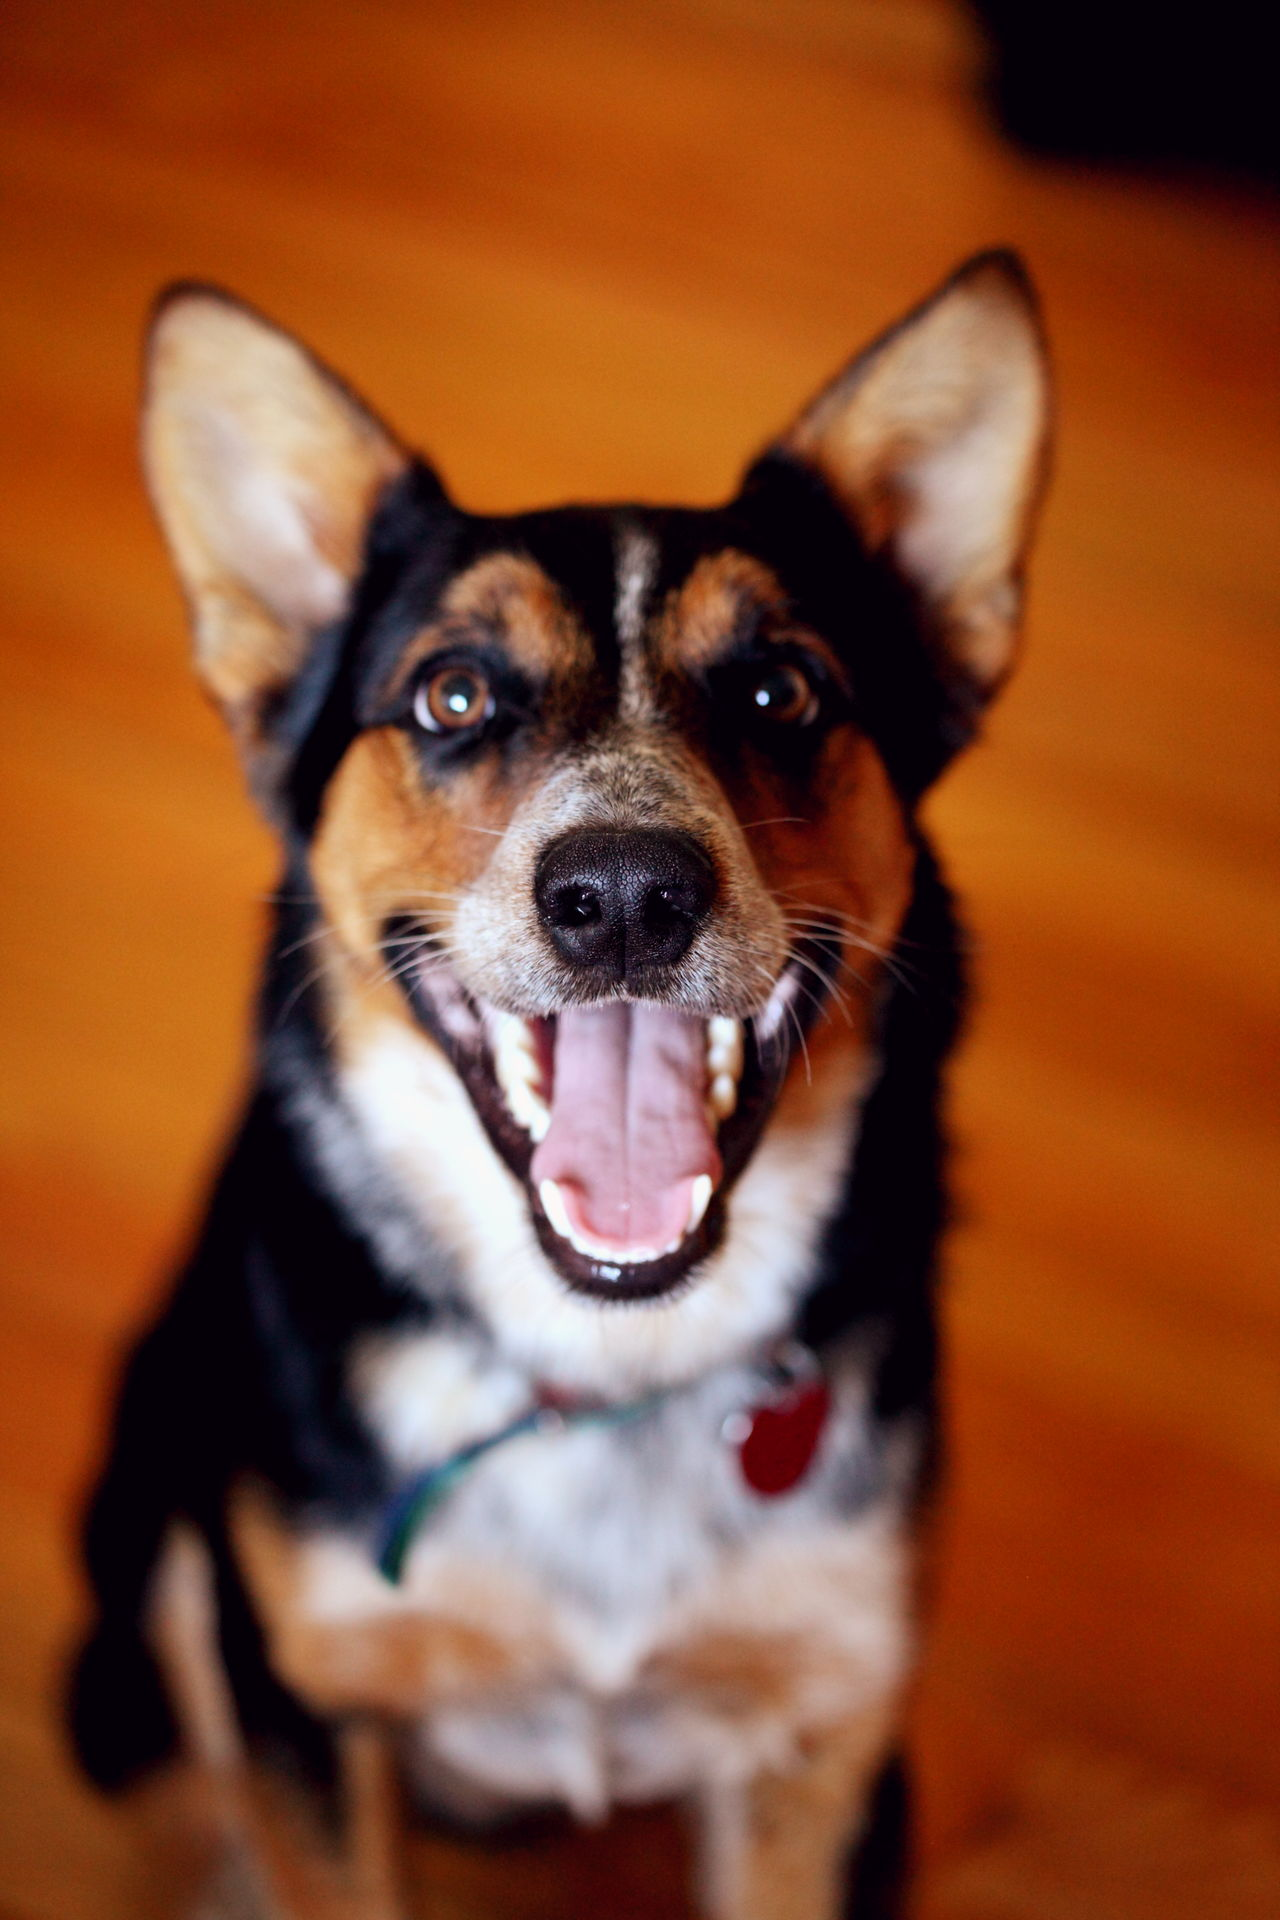 Alertness Animal Head  Black Color Blue Heeler Border Collie Cattledog Close-up Cute Dog Dogs Domestic Animals Happy Mammal Mixed Breed Mutt No People Nose Pet Collar Pets Portrait Puppy Smiling Snout